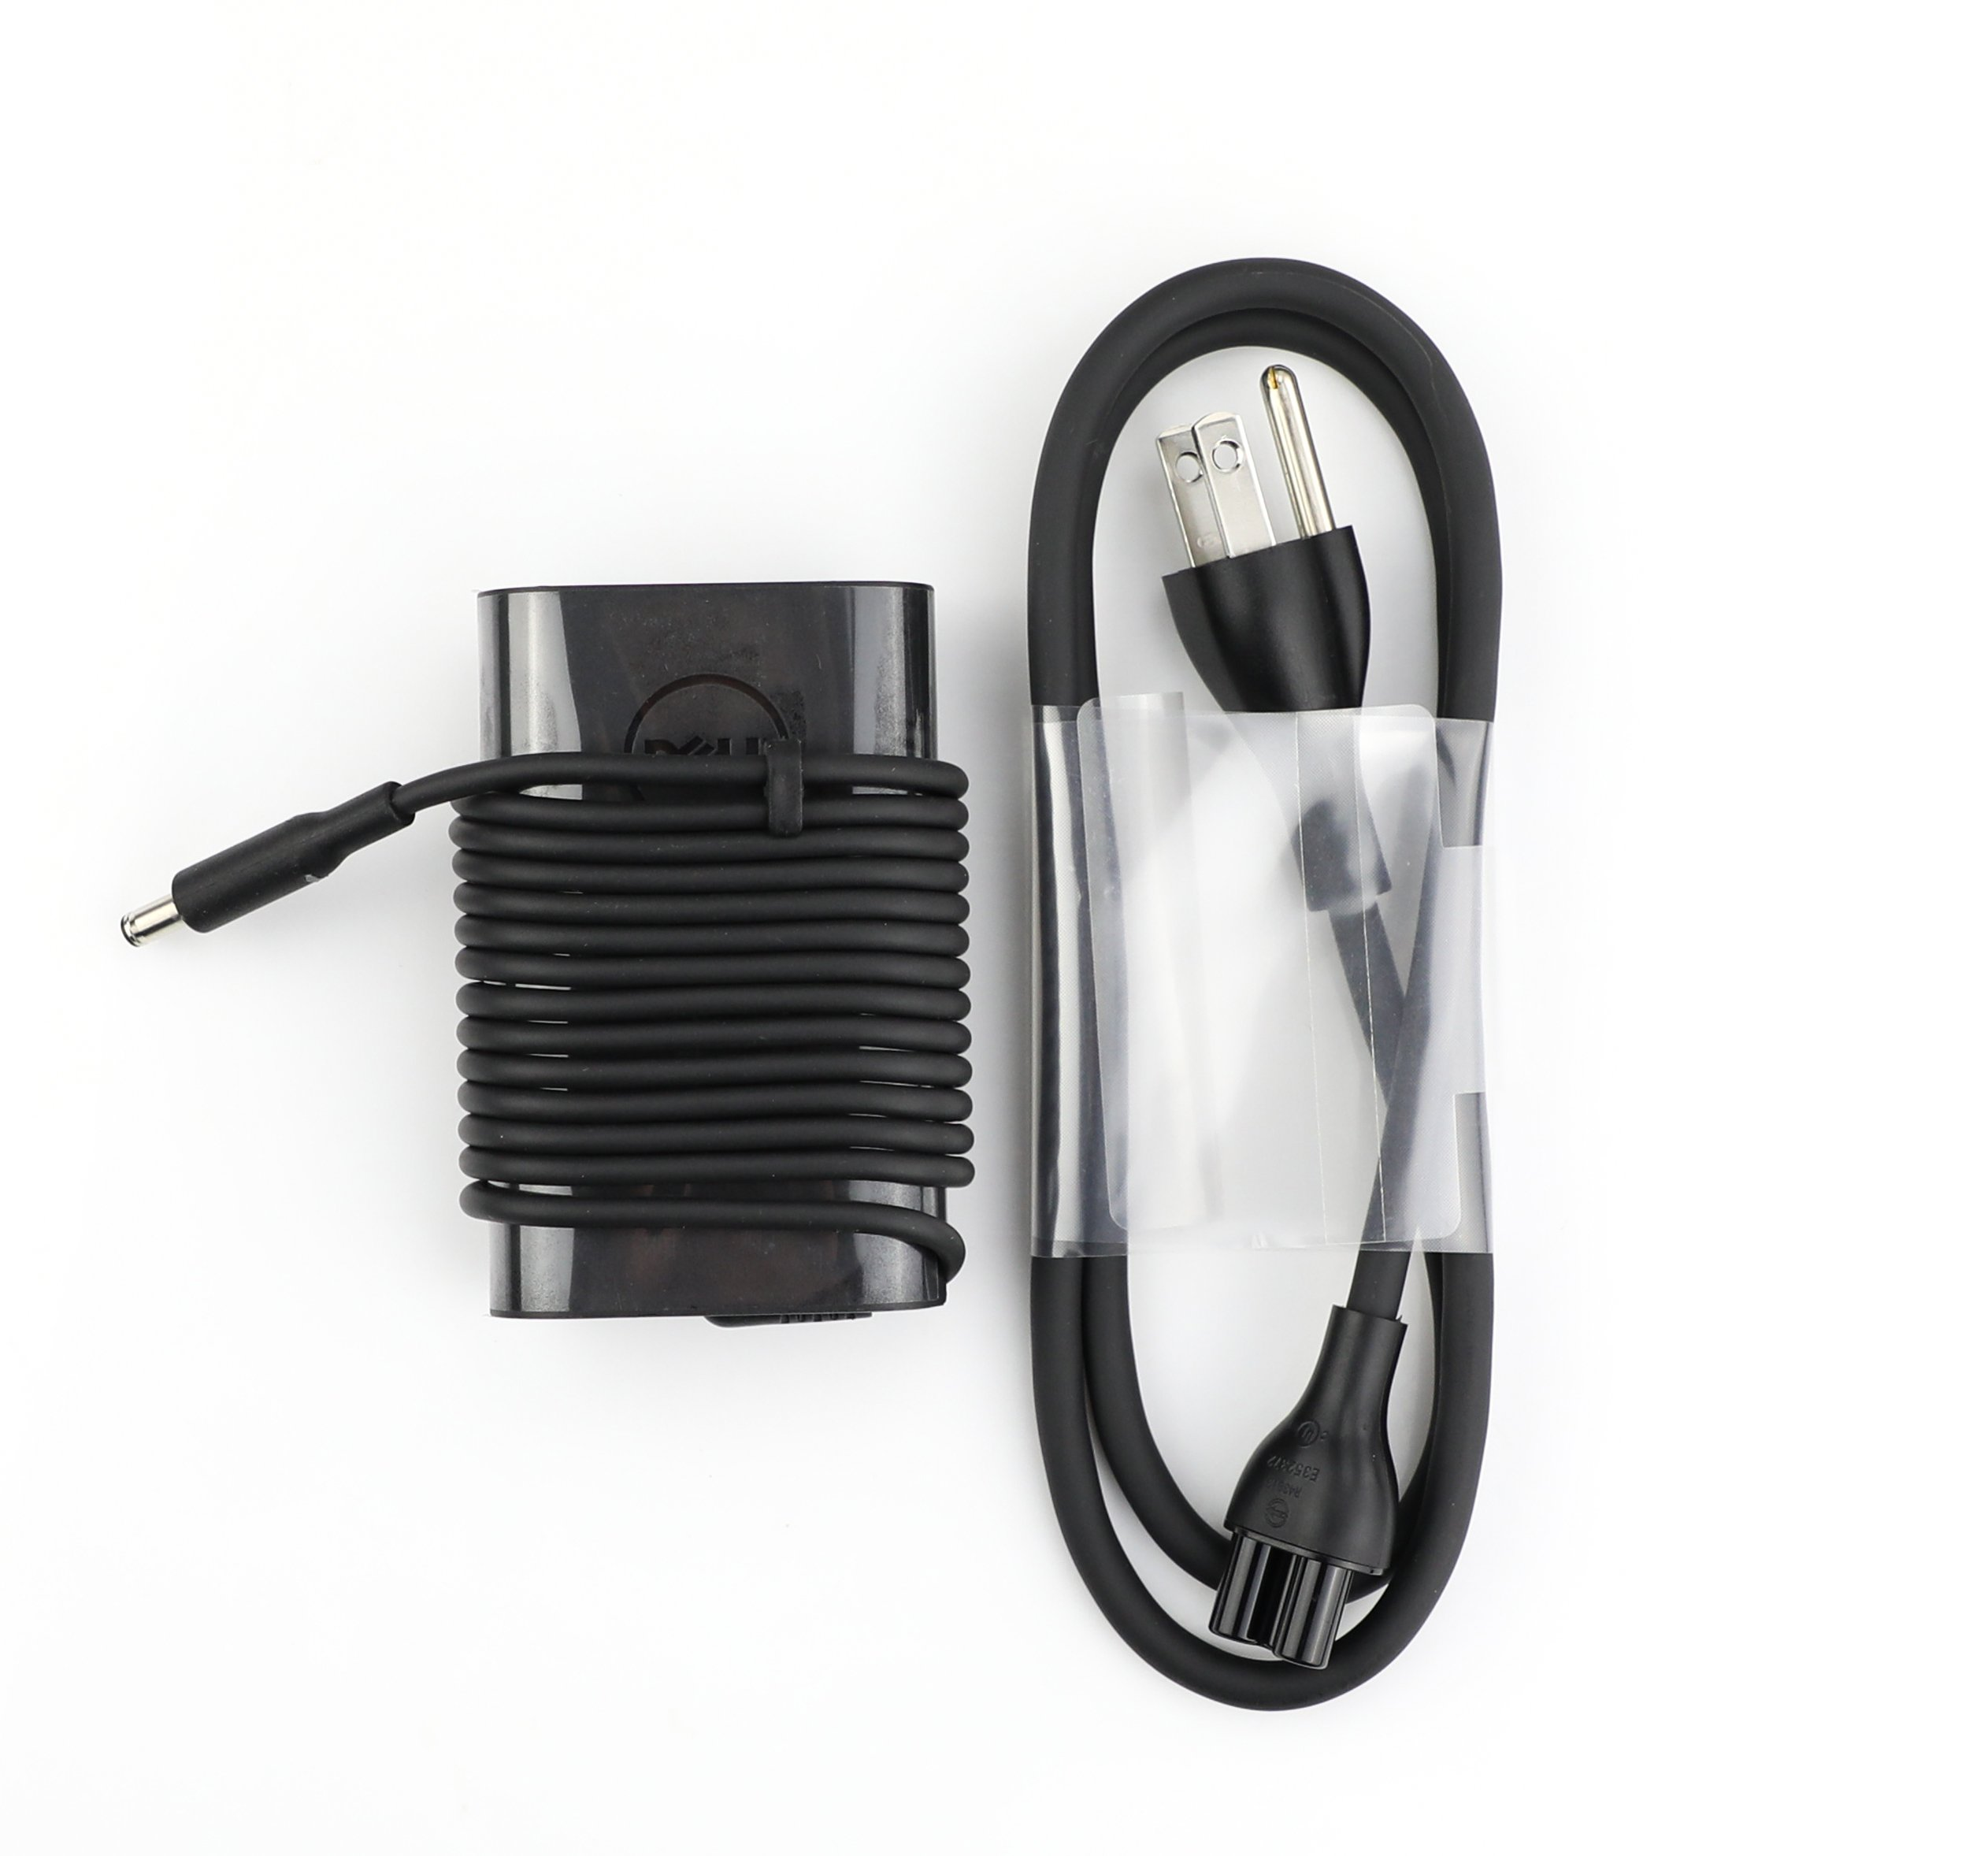 New Original Dell 45w(AA45NM131) New Version Replacement AC Adapter for Dell XPS 13 XPS 11 9P33D-1501, Compatible with P/N: 04H6VH, 4H6VH, DA45NM131, ADP-45XD BA, D0KFY,3RGOT, JHJX0, LA45NM131, CDF57, by Dell Computers